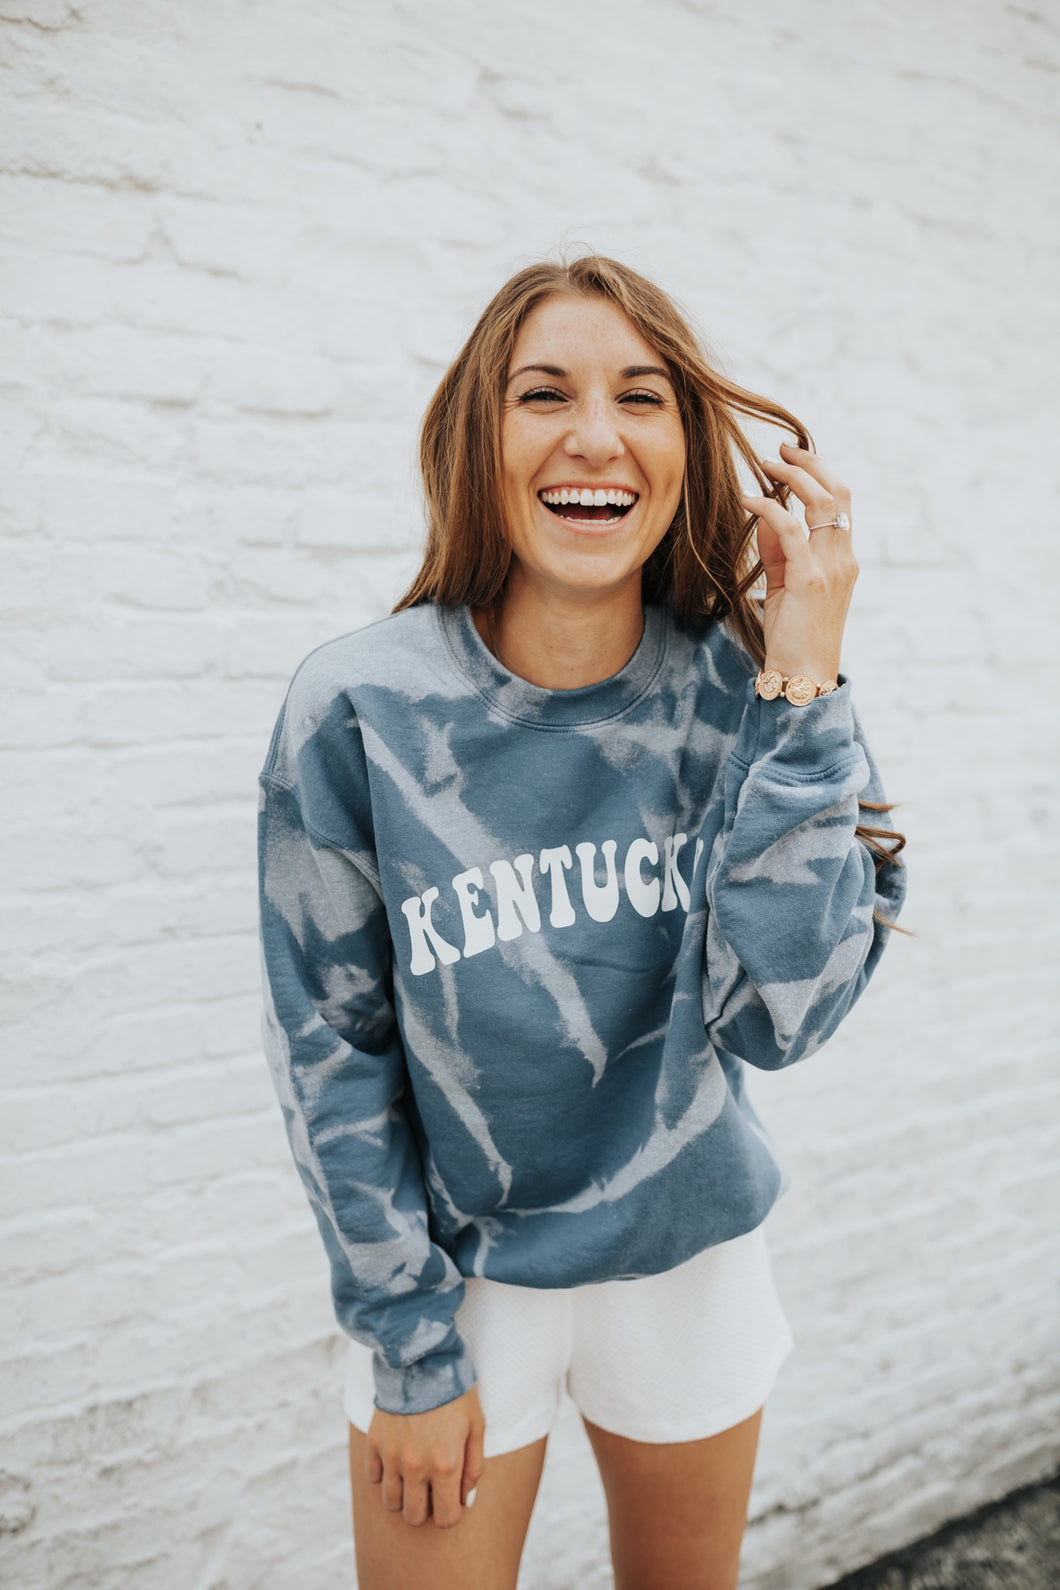 JCB Exclusive: Kentucky Tie Dye Sweatshirt